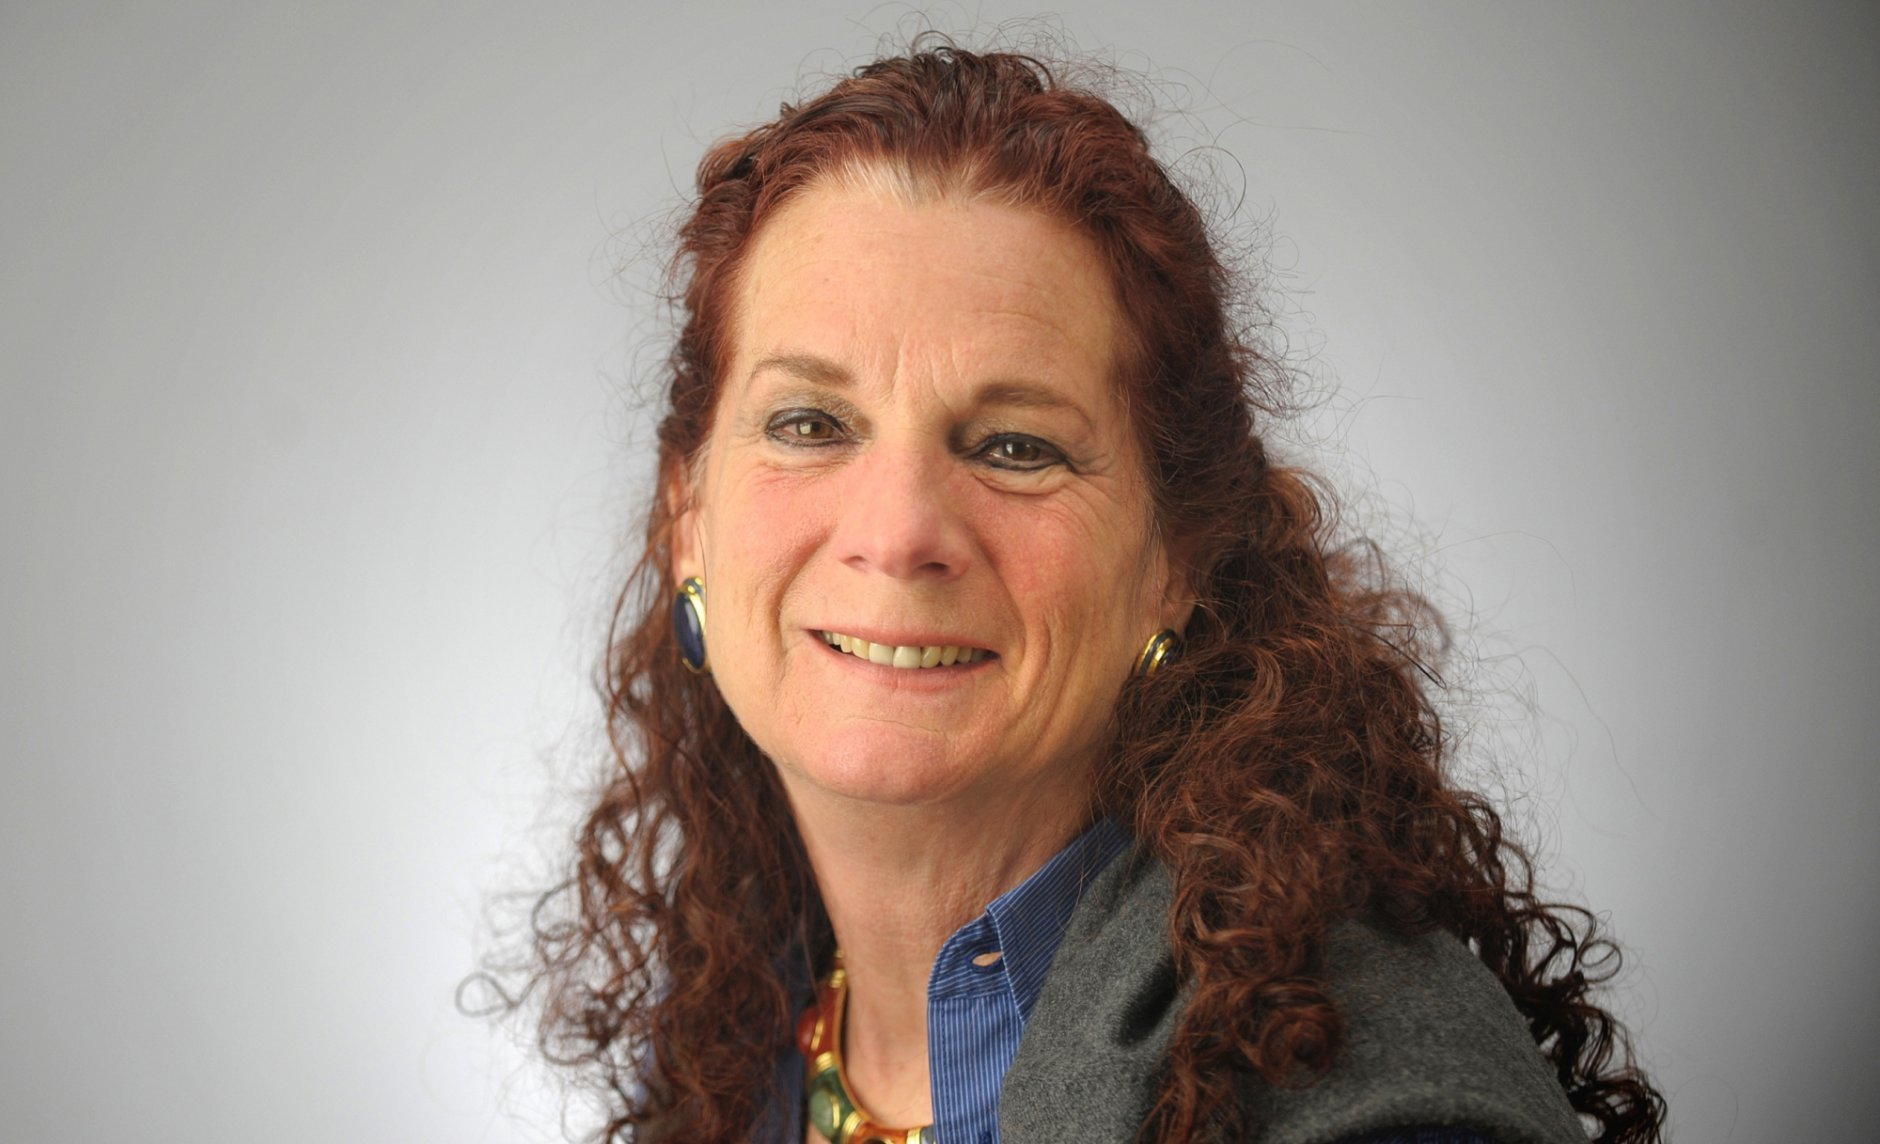 FILE - In this undated photo shows Wendi Winters, reporter for the Capital Gazette. Witnesses say Winters counter-charged the gunman, wielding a trash can and a recycling bin, shouting at him to stop. (The Baltimore Sun via AP)